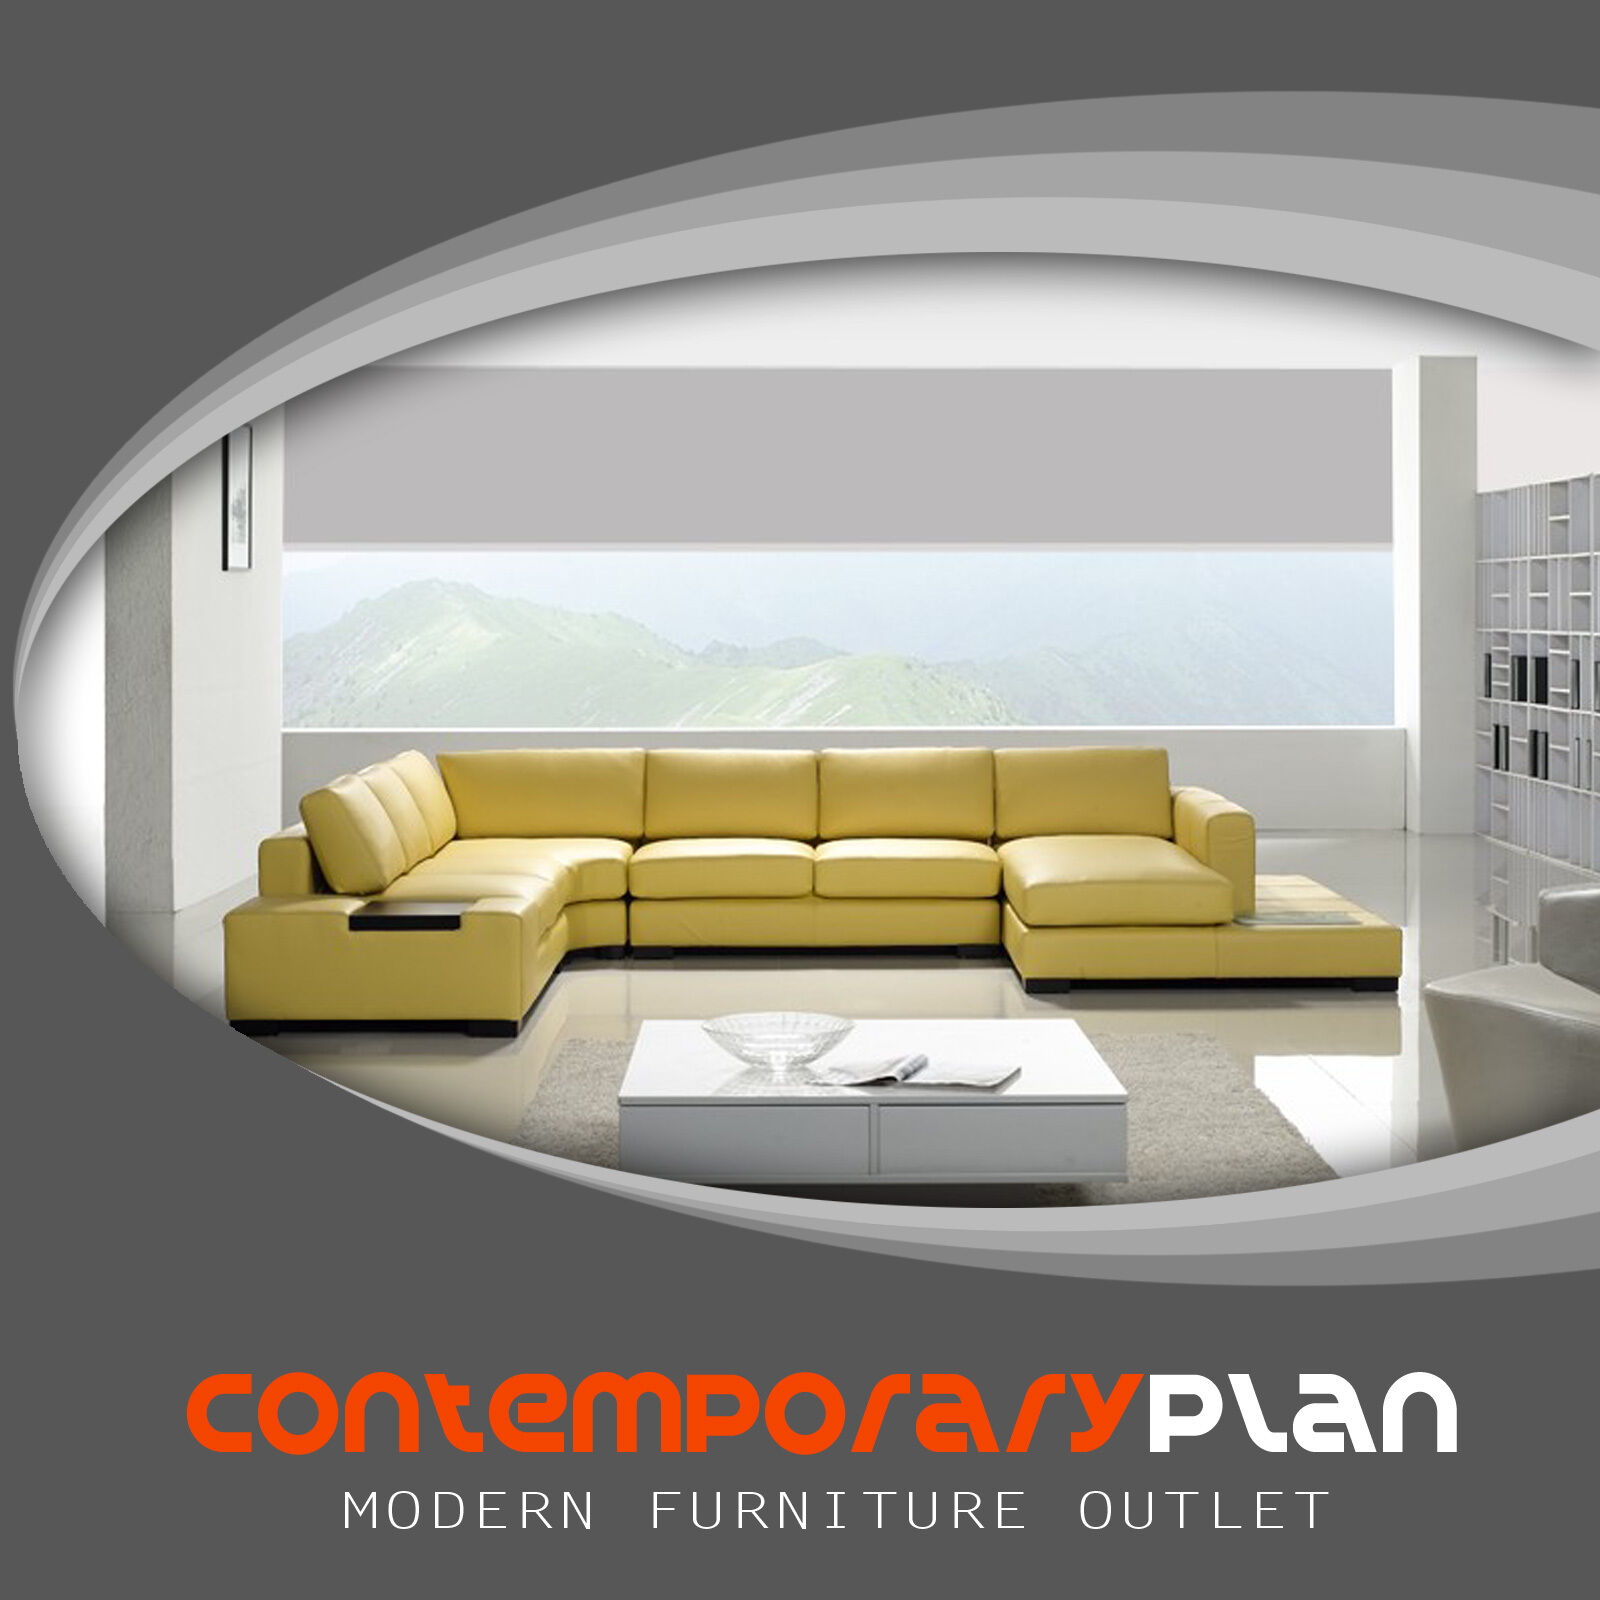 Contemporary Mustard Yellow Leather Sectional Sofa with Buil